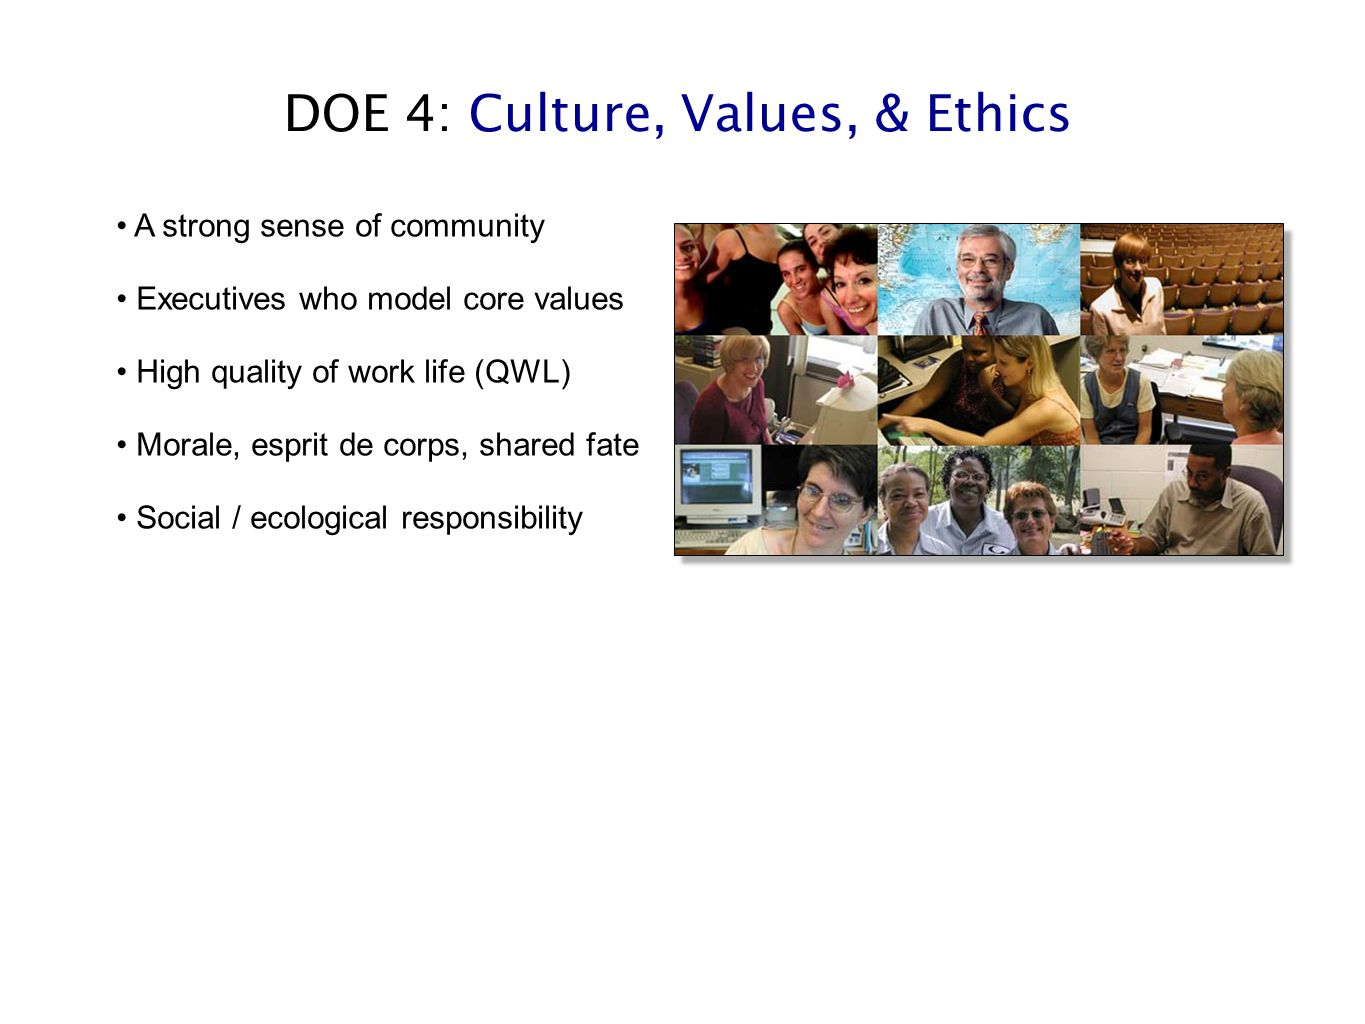 DOE 4: Culture, Values, & Ethics A strong sense of community Executives who model core values High quality of work life (QWL) Morale, esprit de corps, shared fate Social / ecological responsibility